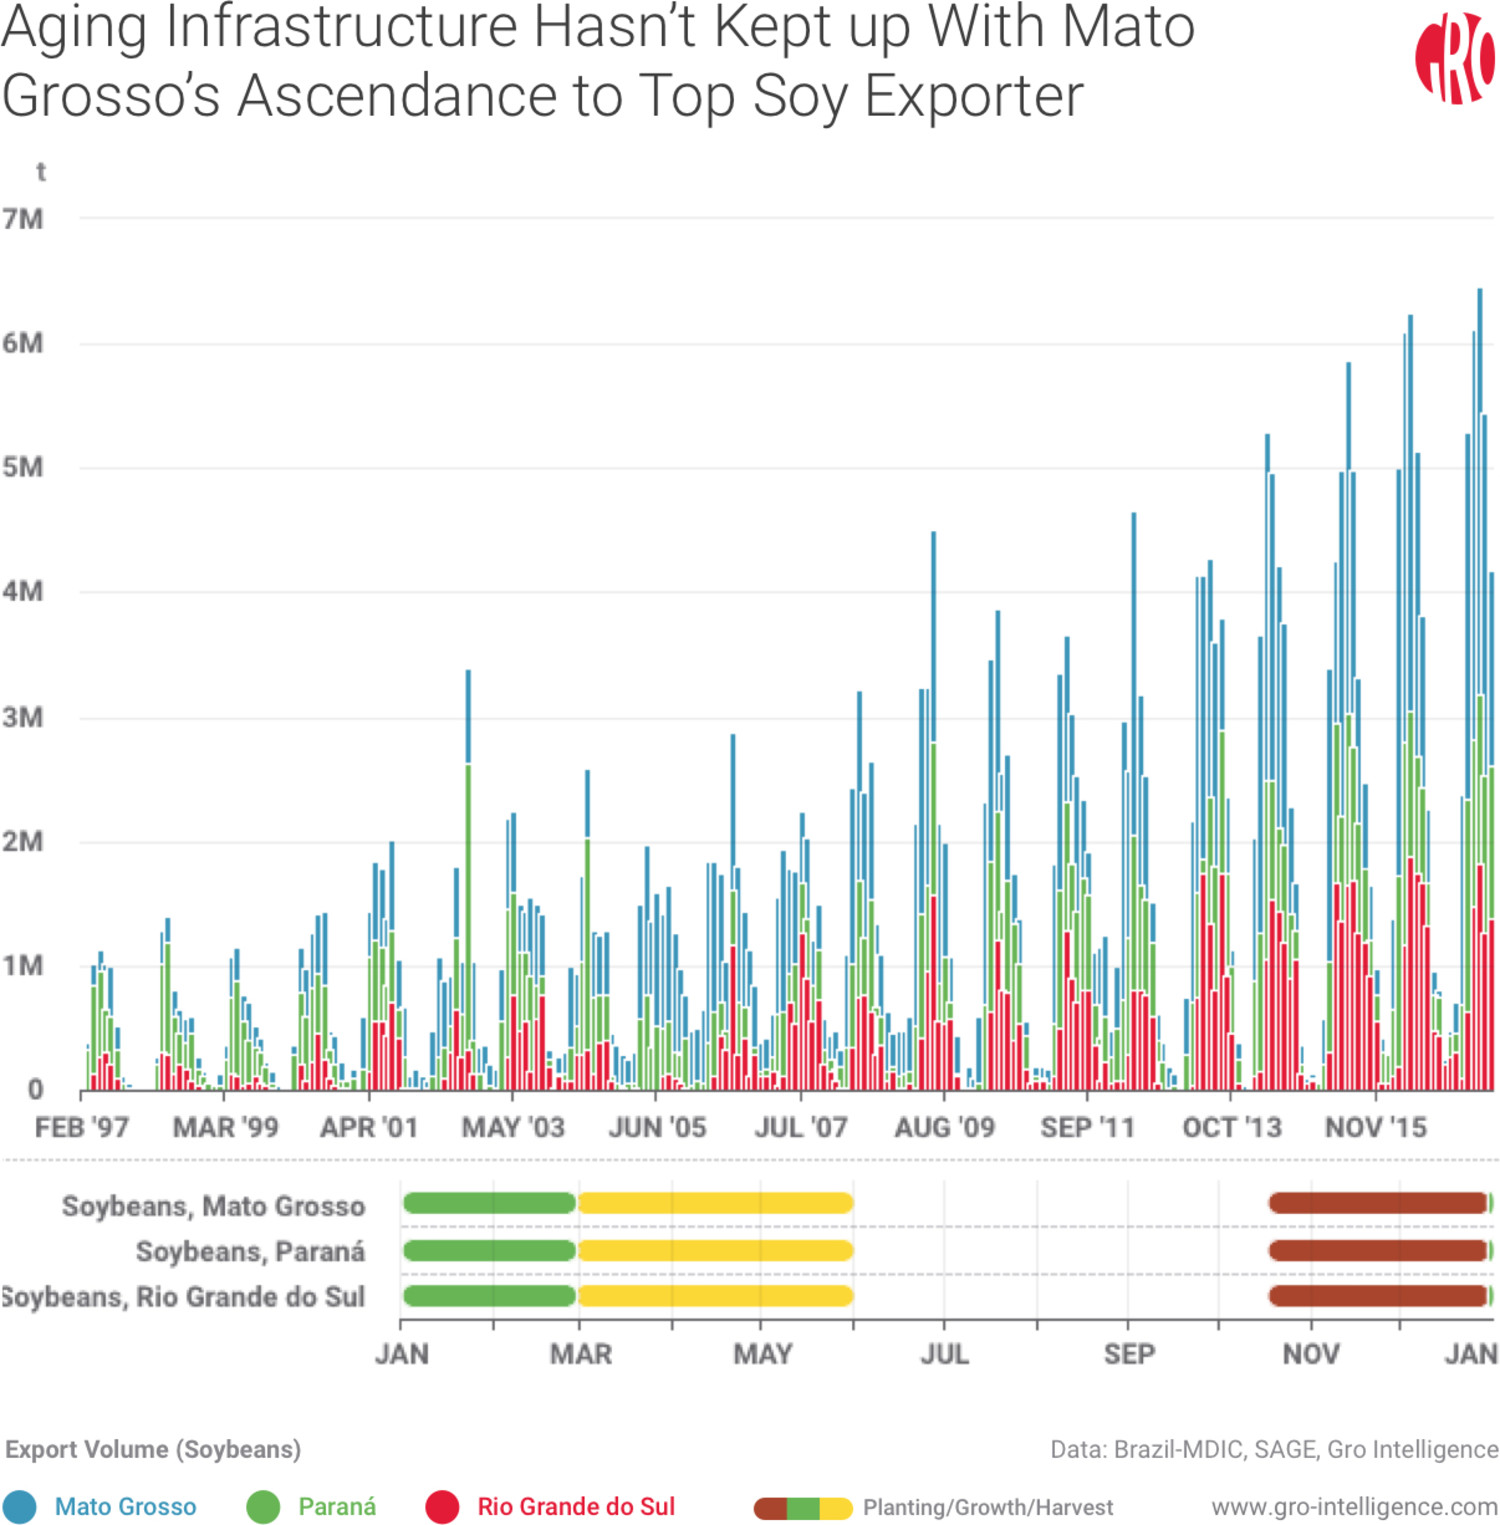 Aging Infrastructure Hasn't Kept Up With Mato Grosso's Ascendance to Top Soy Exporter